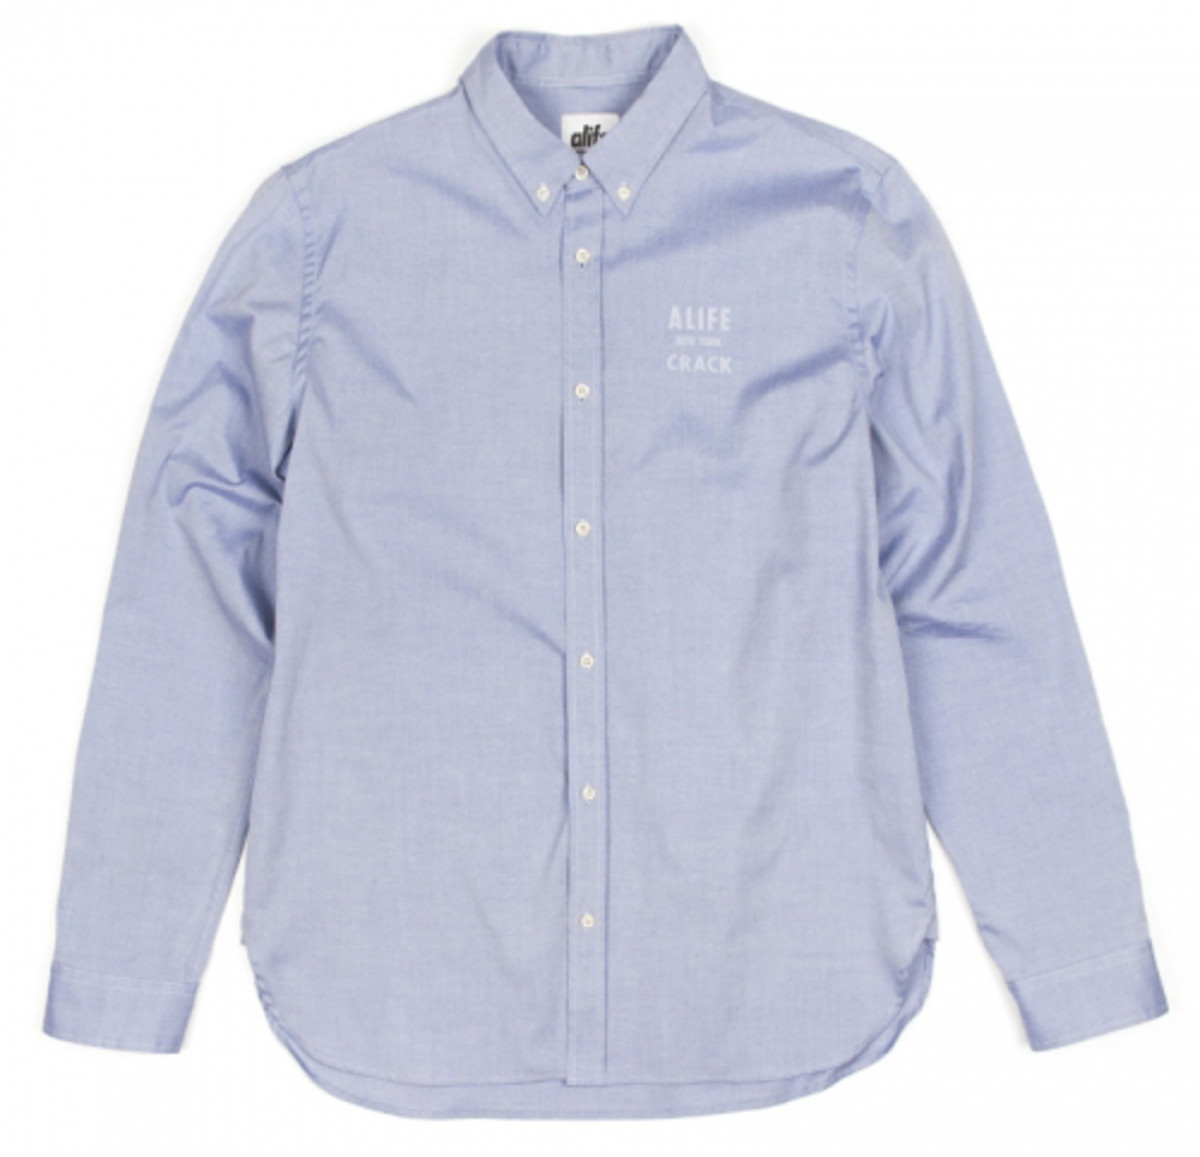 alife-spring-2010-button-down-shirt-01